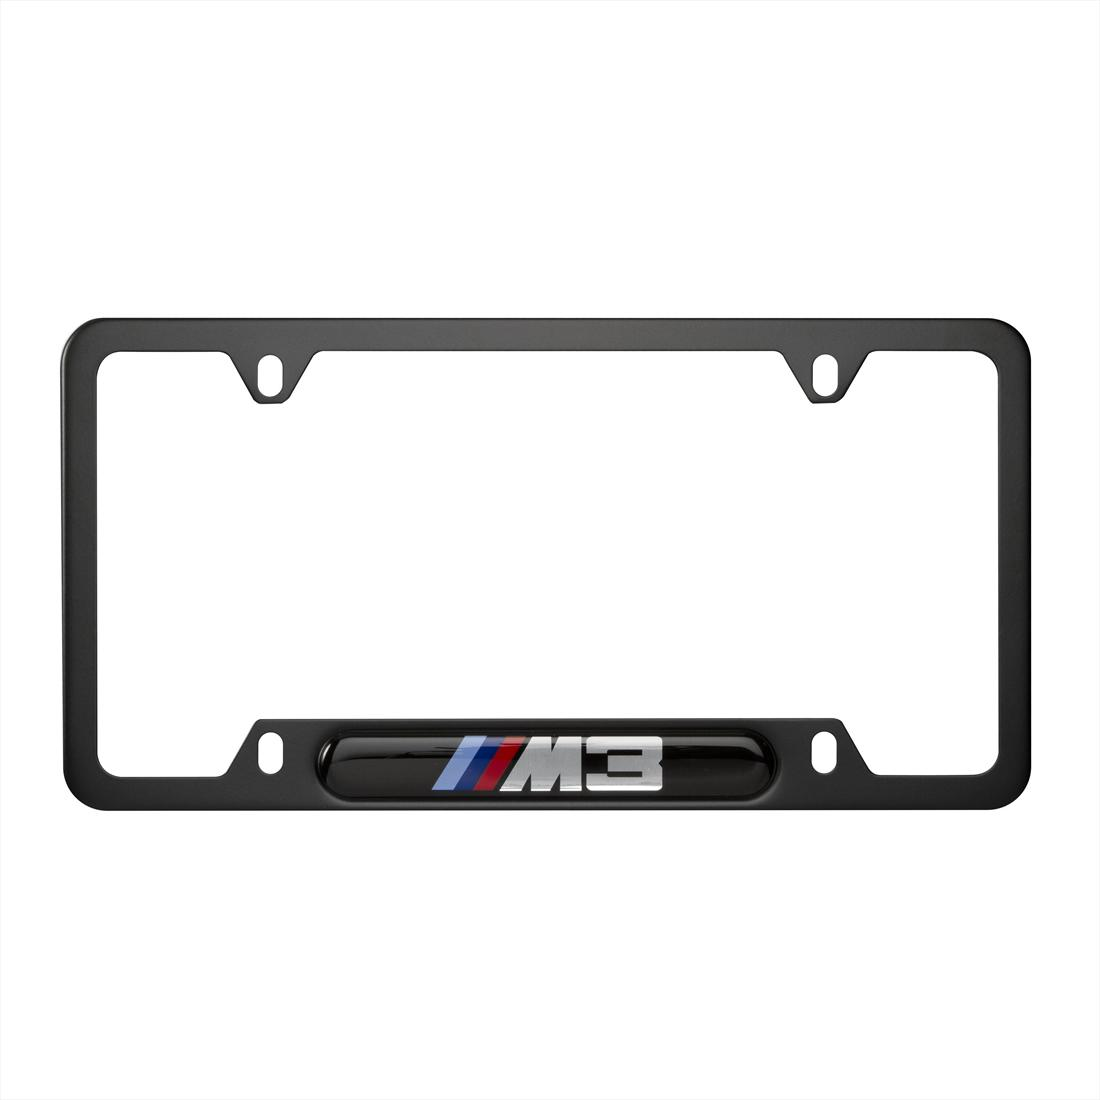 bmw m3 logo license plate frames. Cars Review. Best American Auto & Cars Review